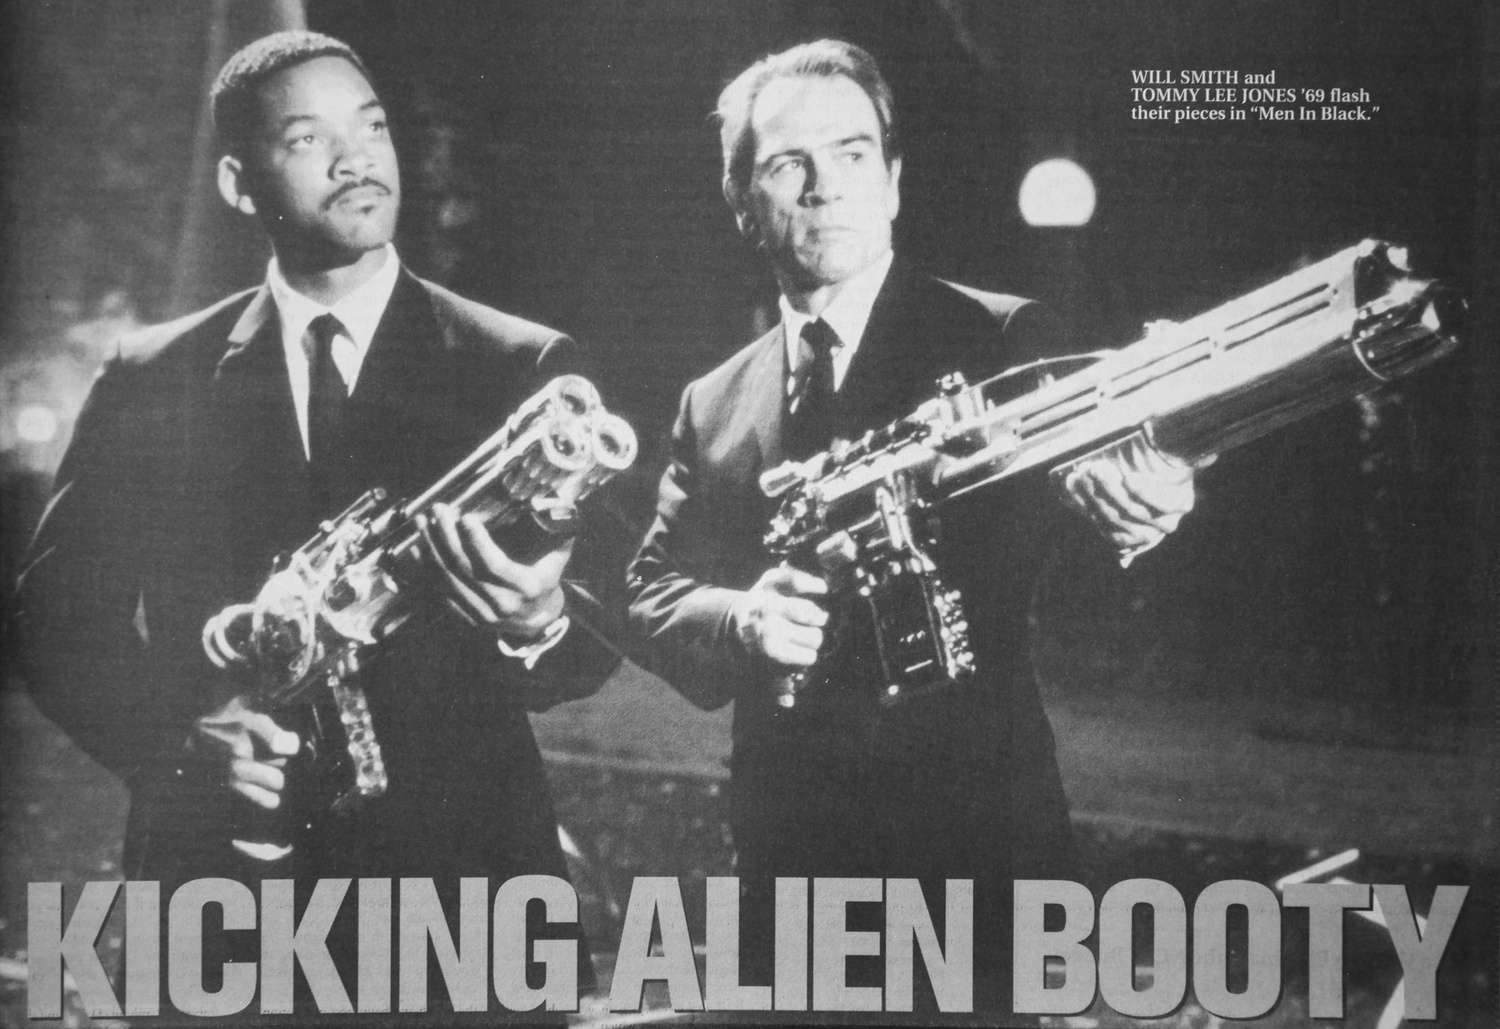 Tommy Lee Jones '69 and Will Smith appear in an advertisement for Men In Black.